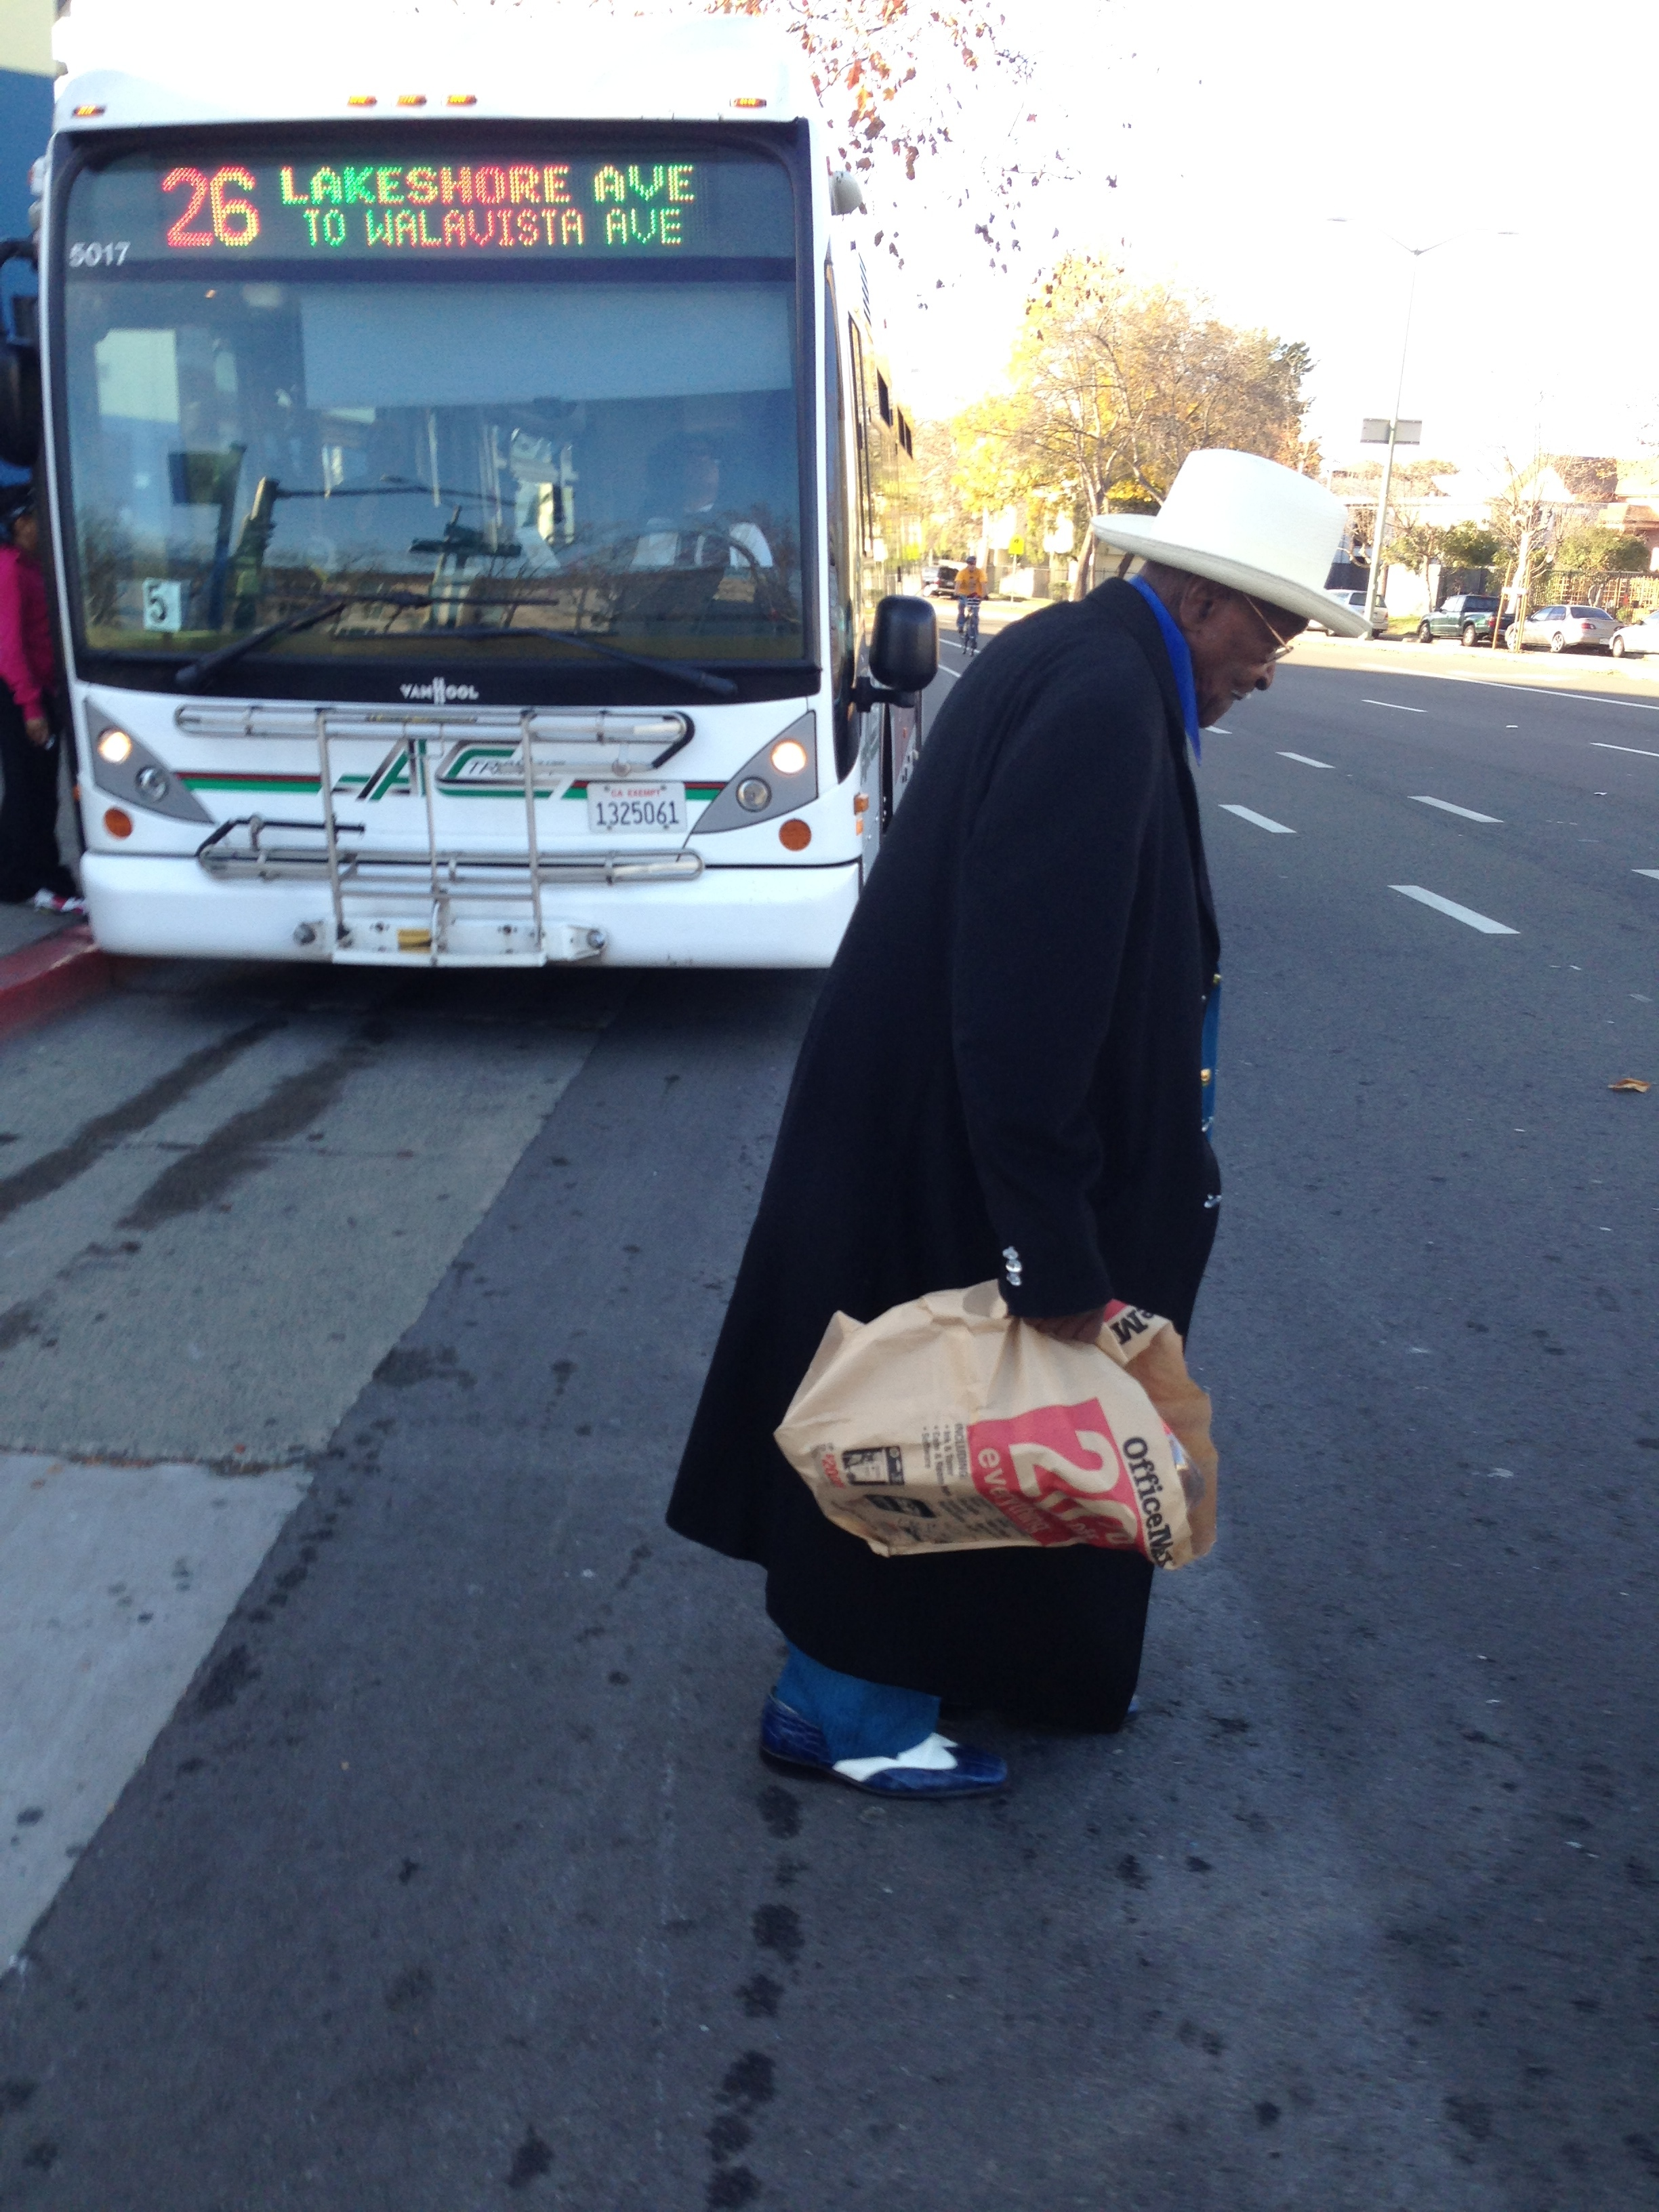 Caption: Long-time AC Transit rider Walter Davis gets off the bus at 14th and Market in Oakland., Credit: Isabel Angell